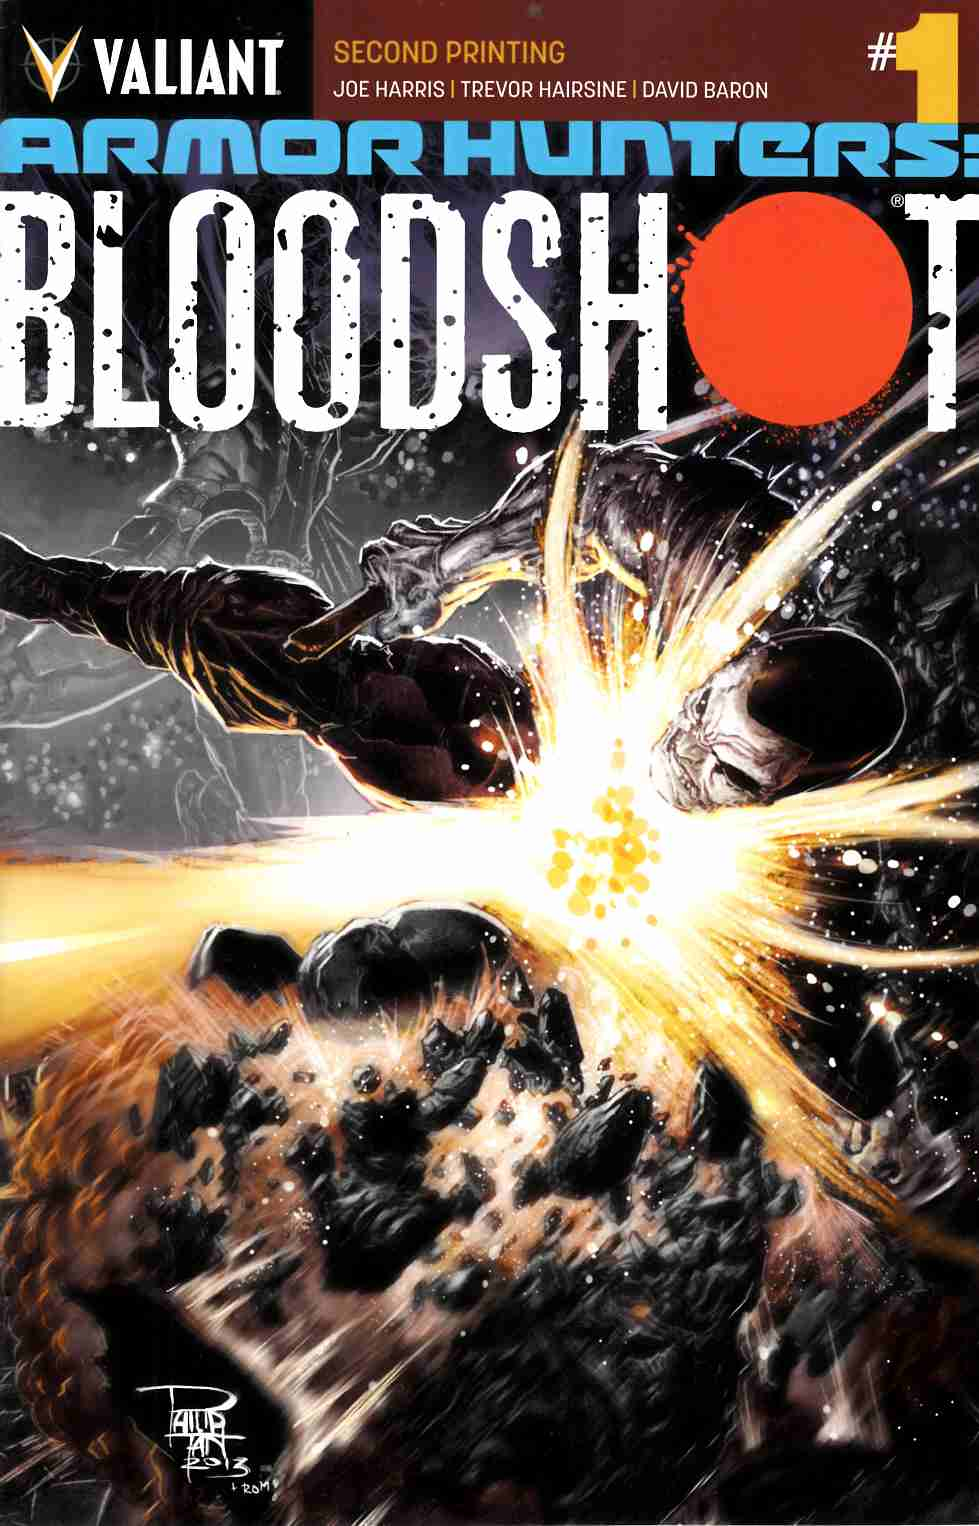 Armor Hunters Bloodshot #1 Second Printing [Comic] THUMBNAIL